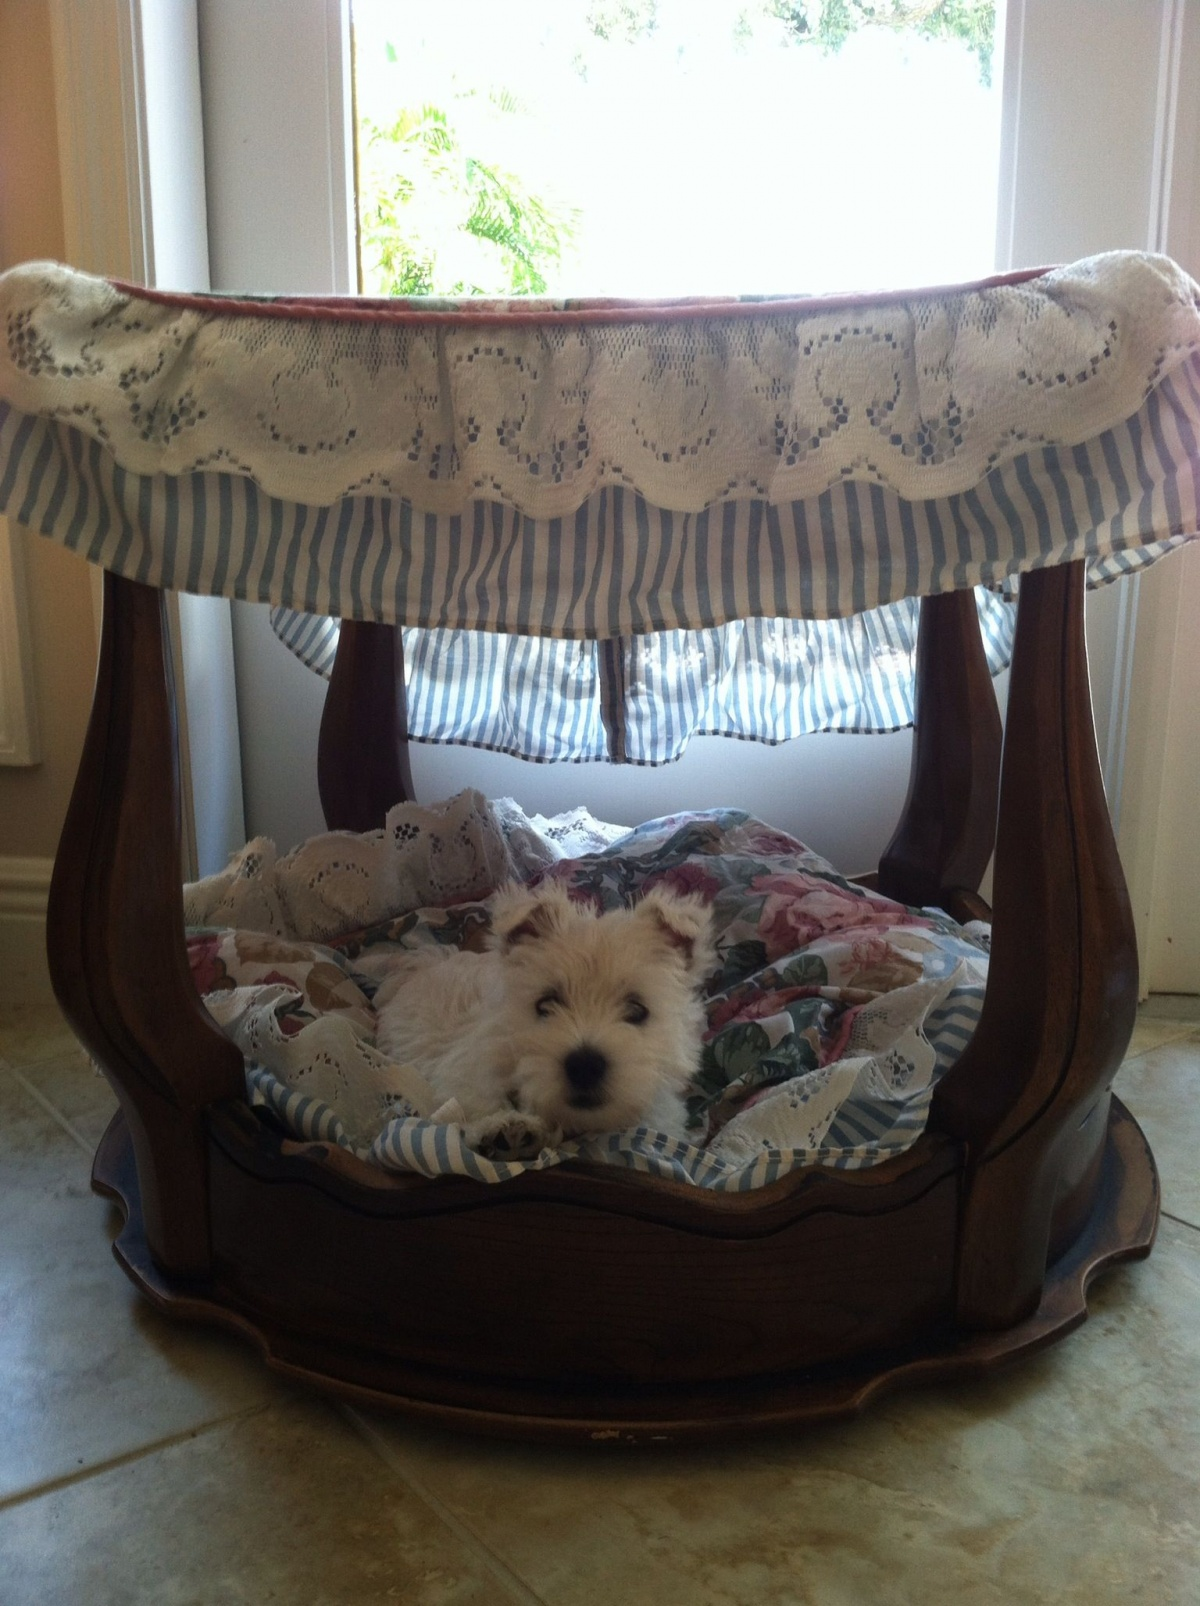 A stool can turn into a four-poster pet bed